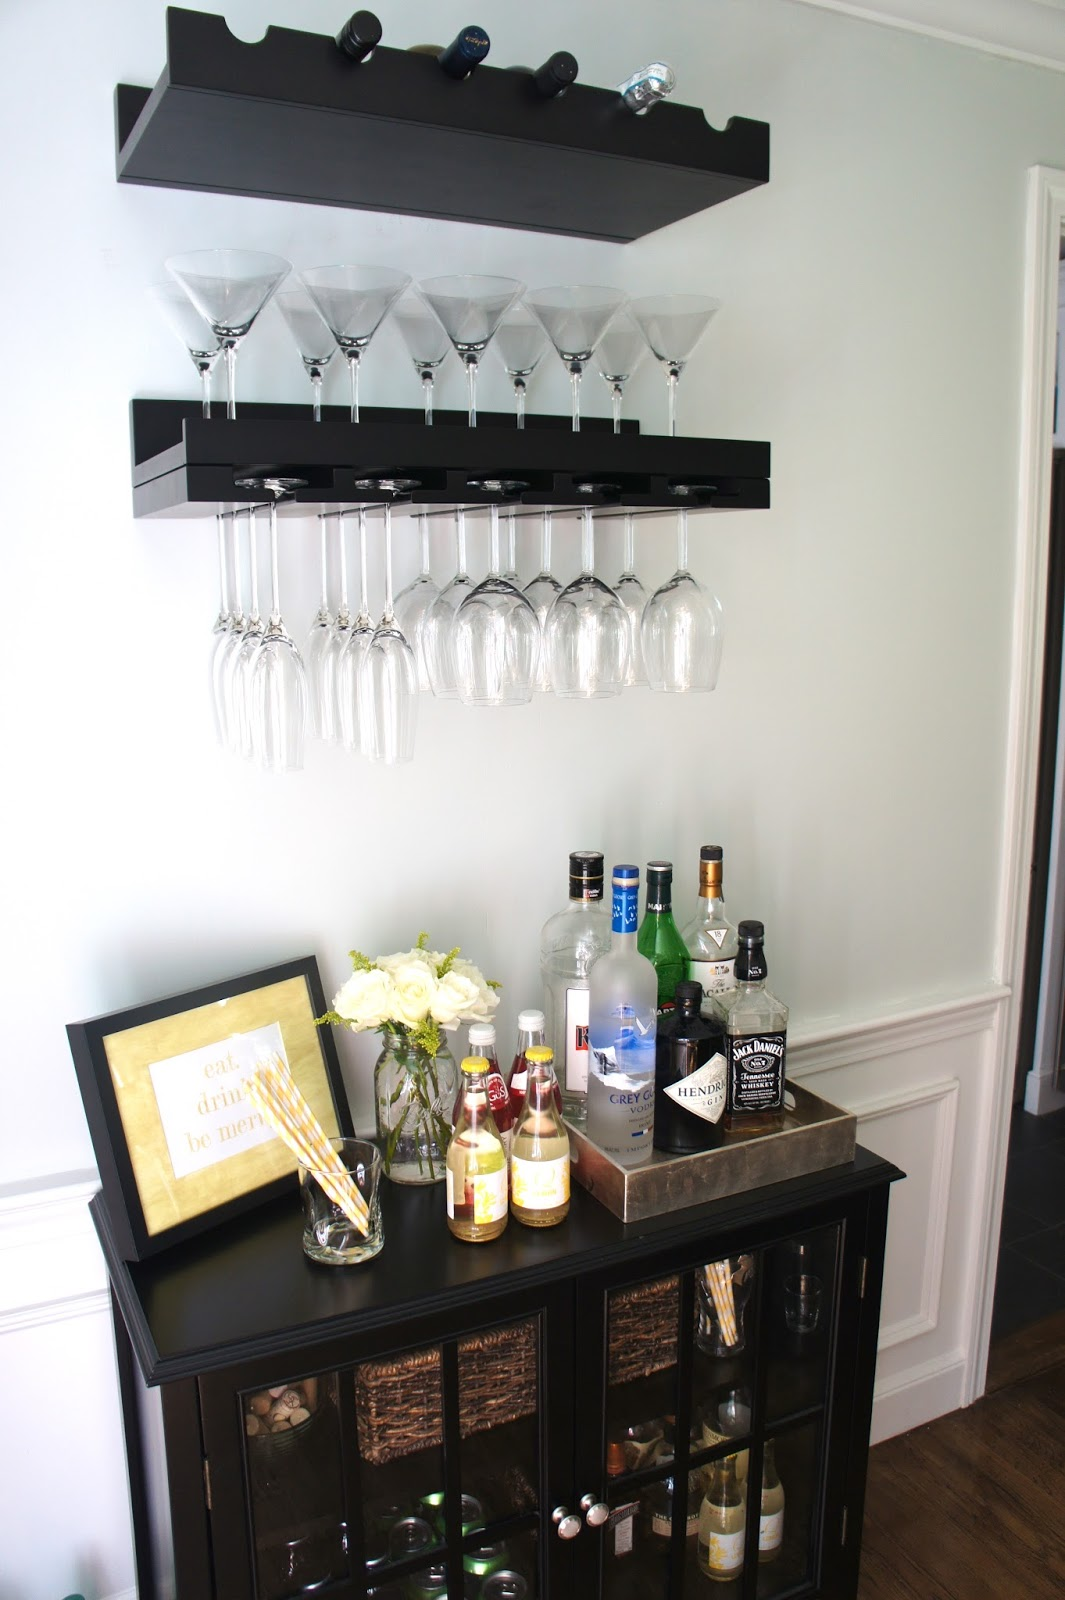 Home with baxter an organized home bar area - Bars for house ...